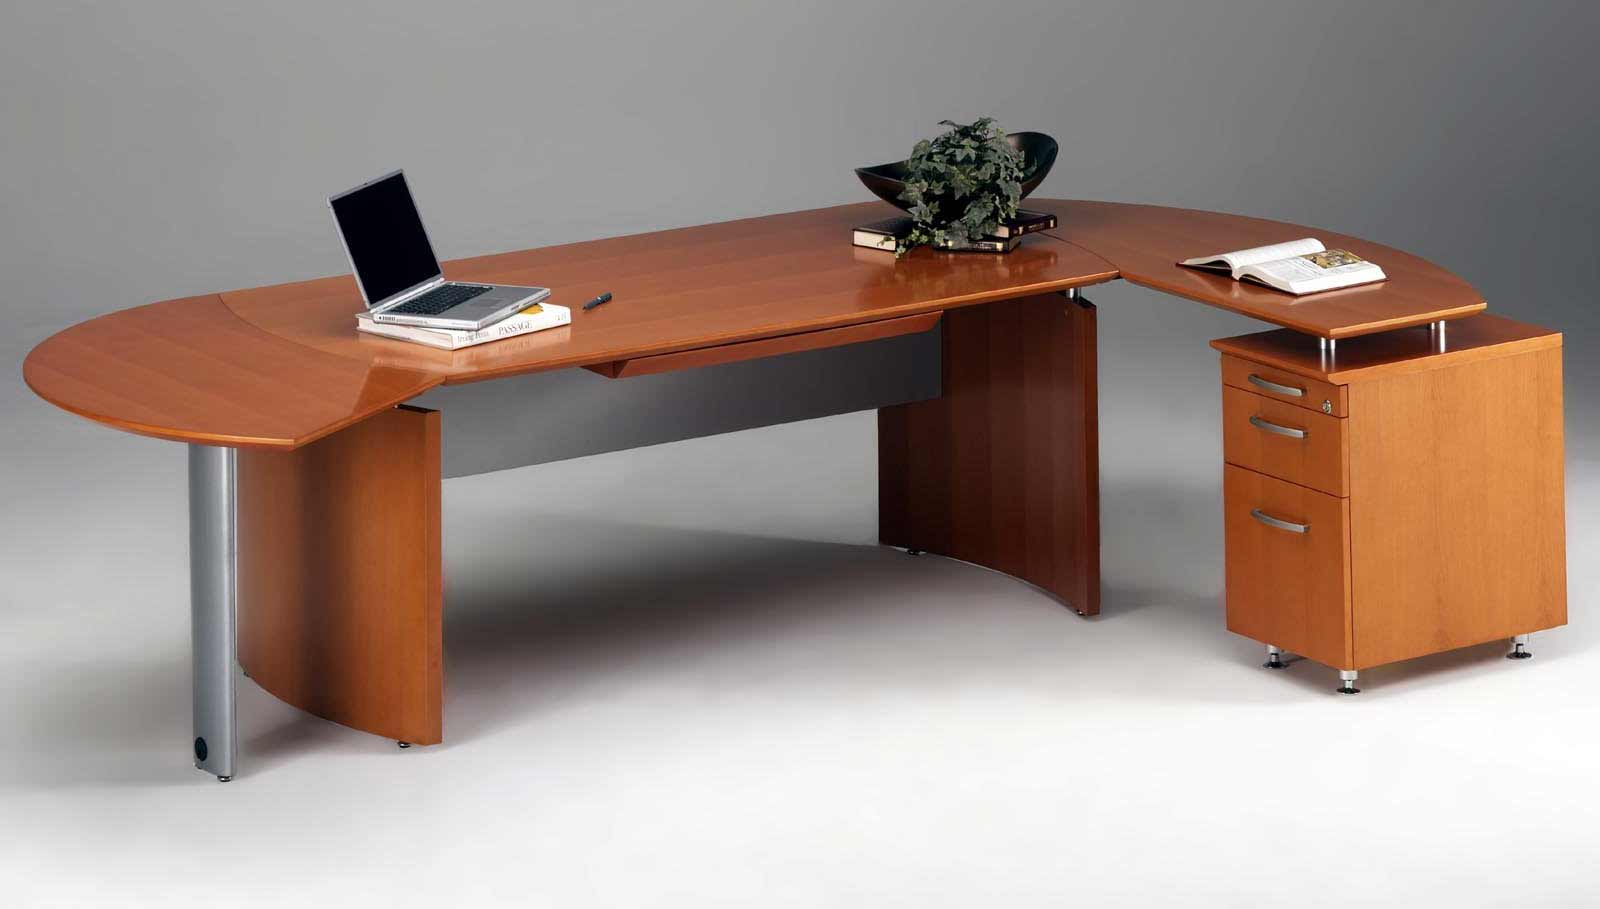 computer desk ideas design for your home office furniture idea. home